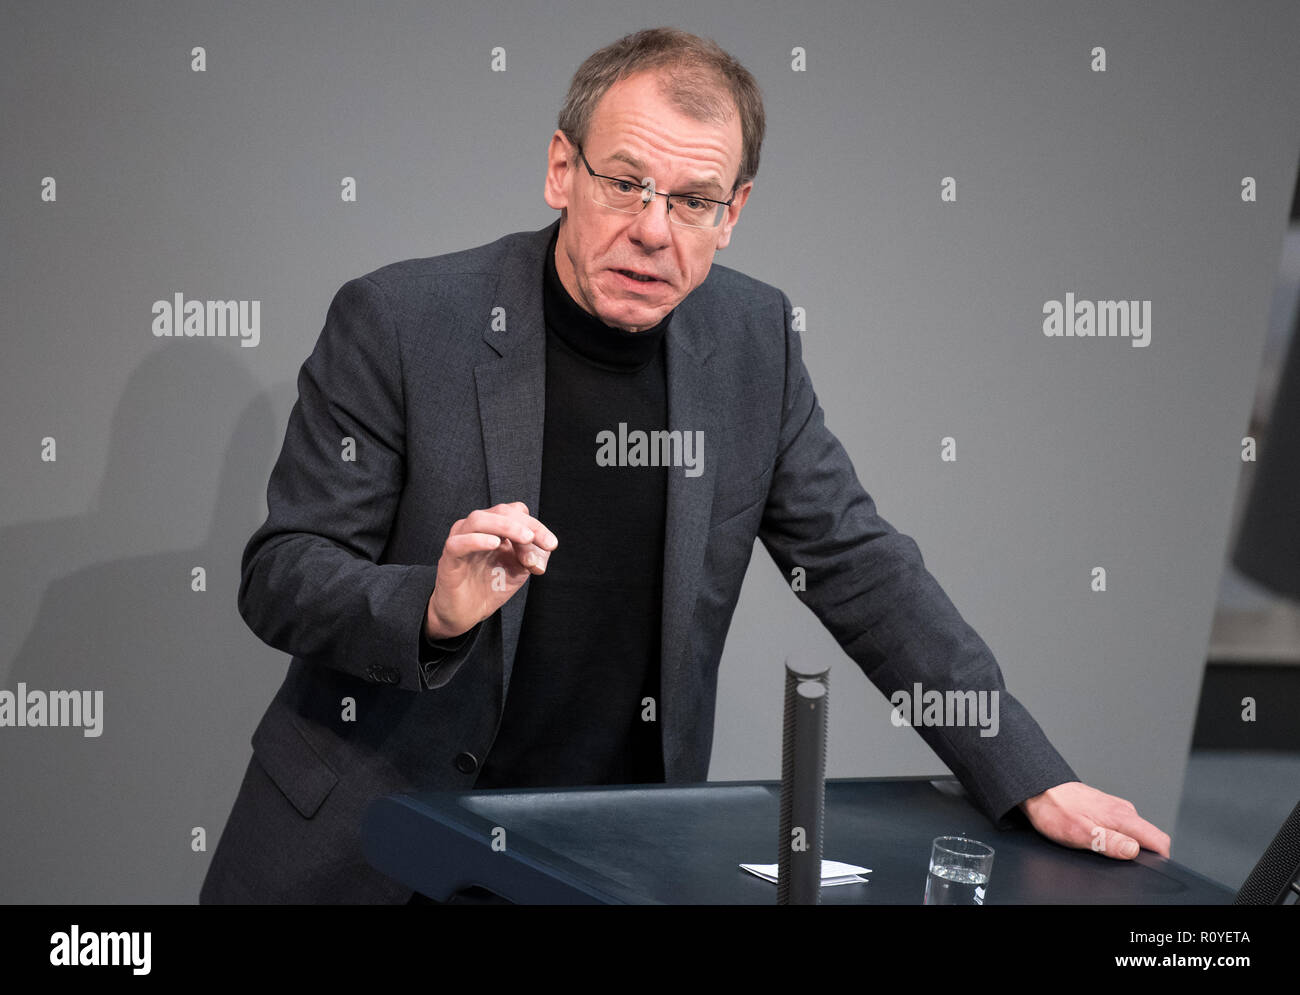 Berlin, Germany. 08th Nov, 2018. Markus Kurth (Bündnis 90/Die Grünen) speaks during the plenary session in the German Bundestag. Topics of the 61st session of the 19th legislative period include the pension package introduced by the Federal Government, additional safe countries of origin, tax relief for families, changes in asylum law, accelerated traffic planning and a current hour on the INF (Intermediate Range Nuclear Forces) nuclear disarmament treaty. Credit: Bernd von Jutrczenka/dpa/Alamy Live News - Stock Image